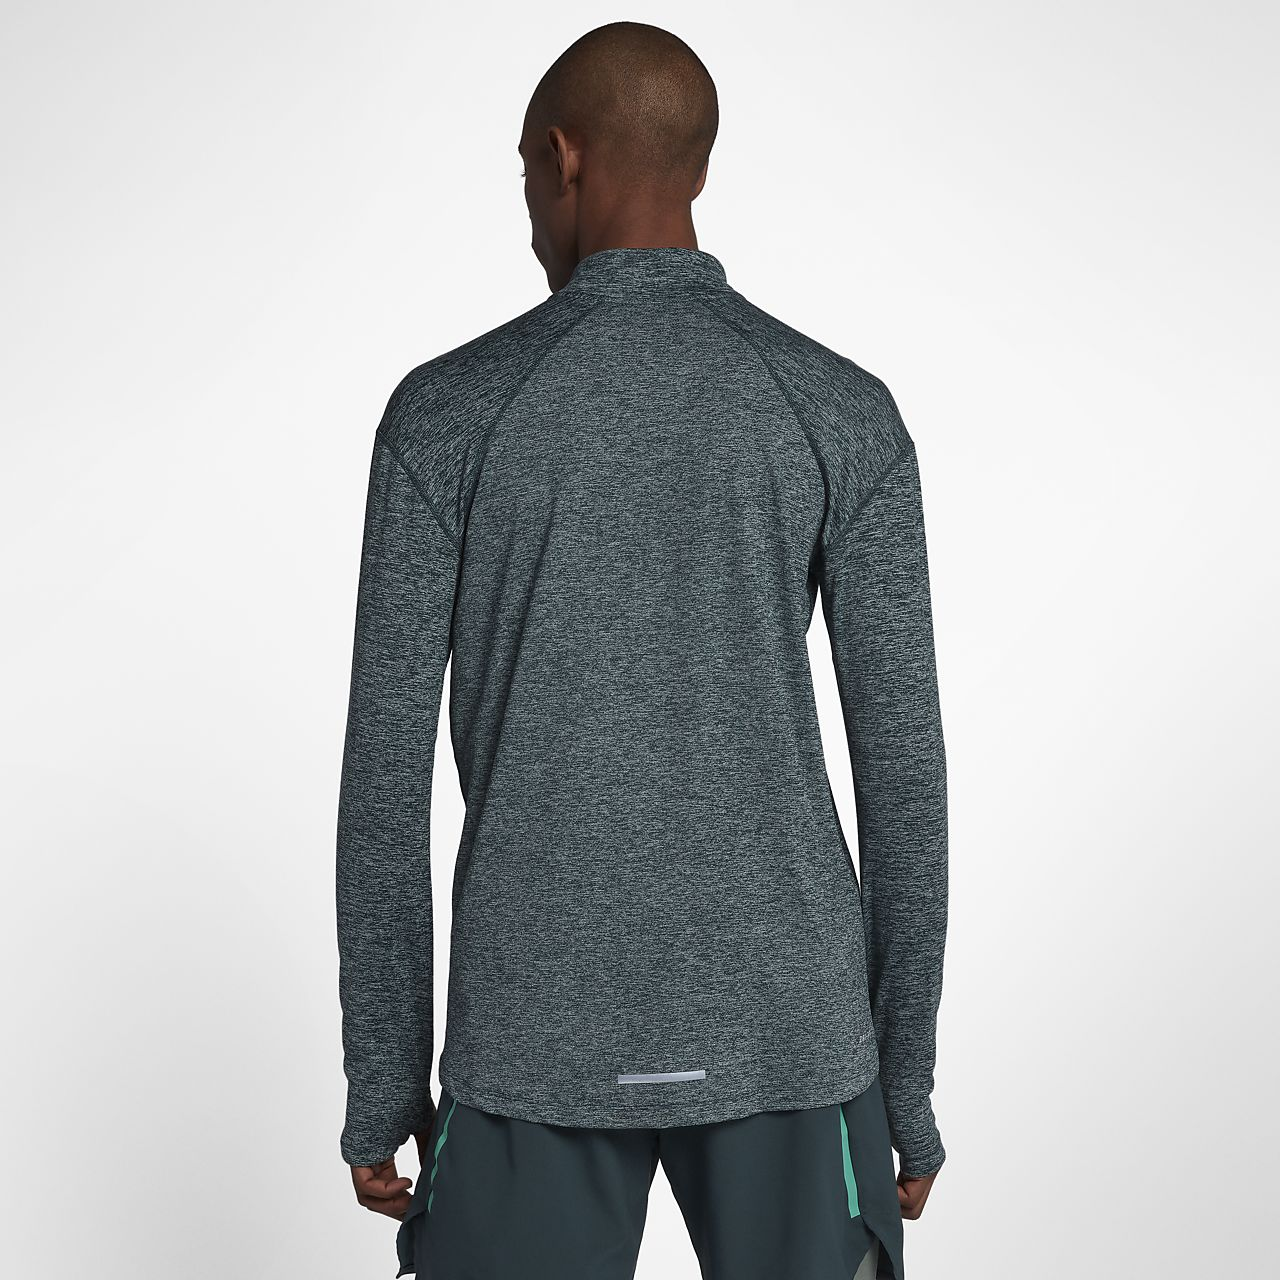 e33adf05 Nike Dri-FIT Men's Long-Sleeve Half-Zip Running Top. Nike.com AU